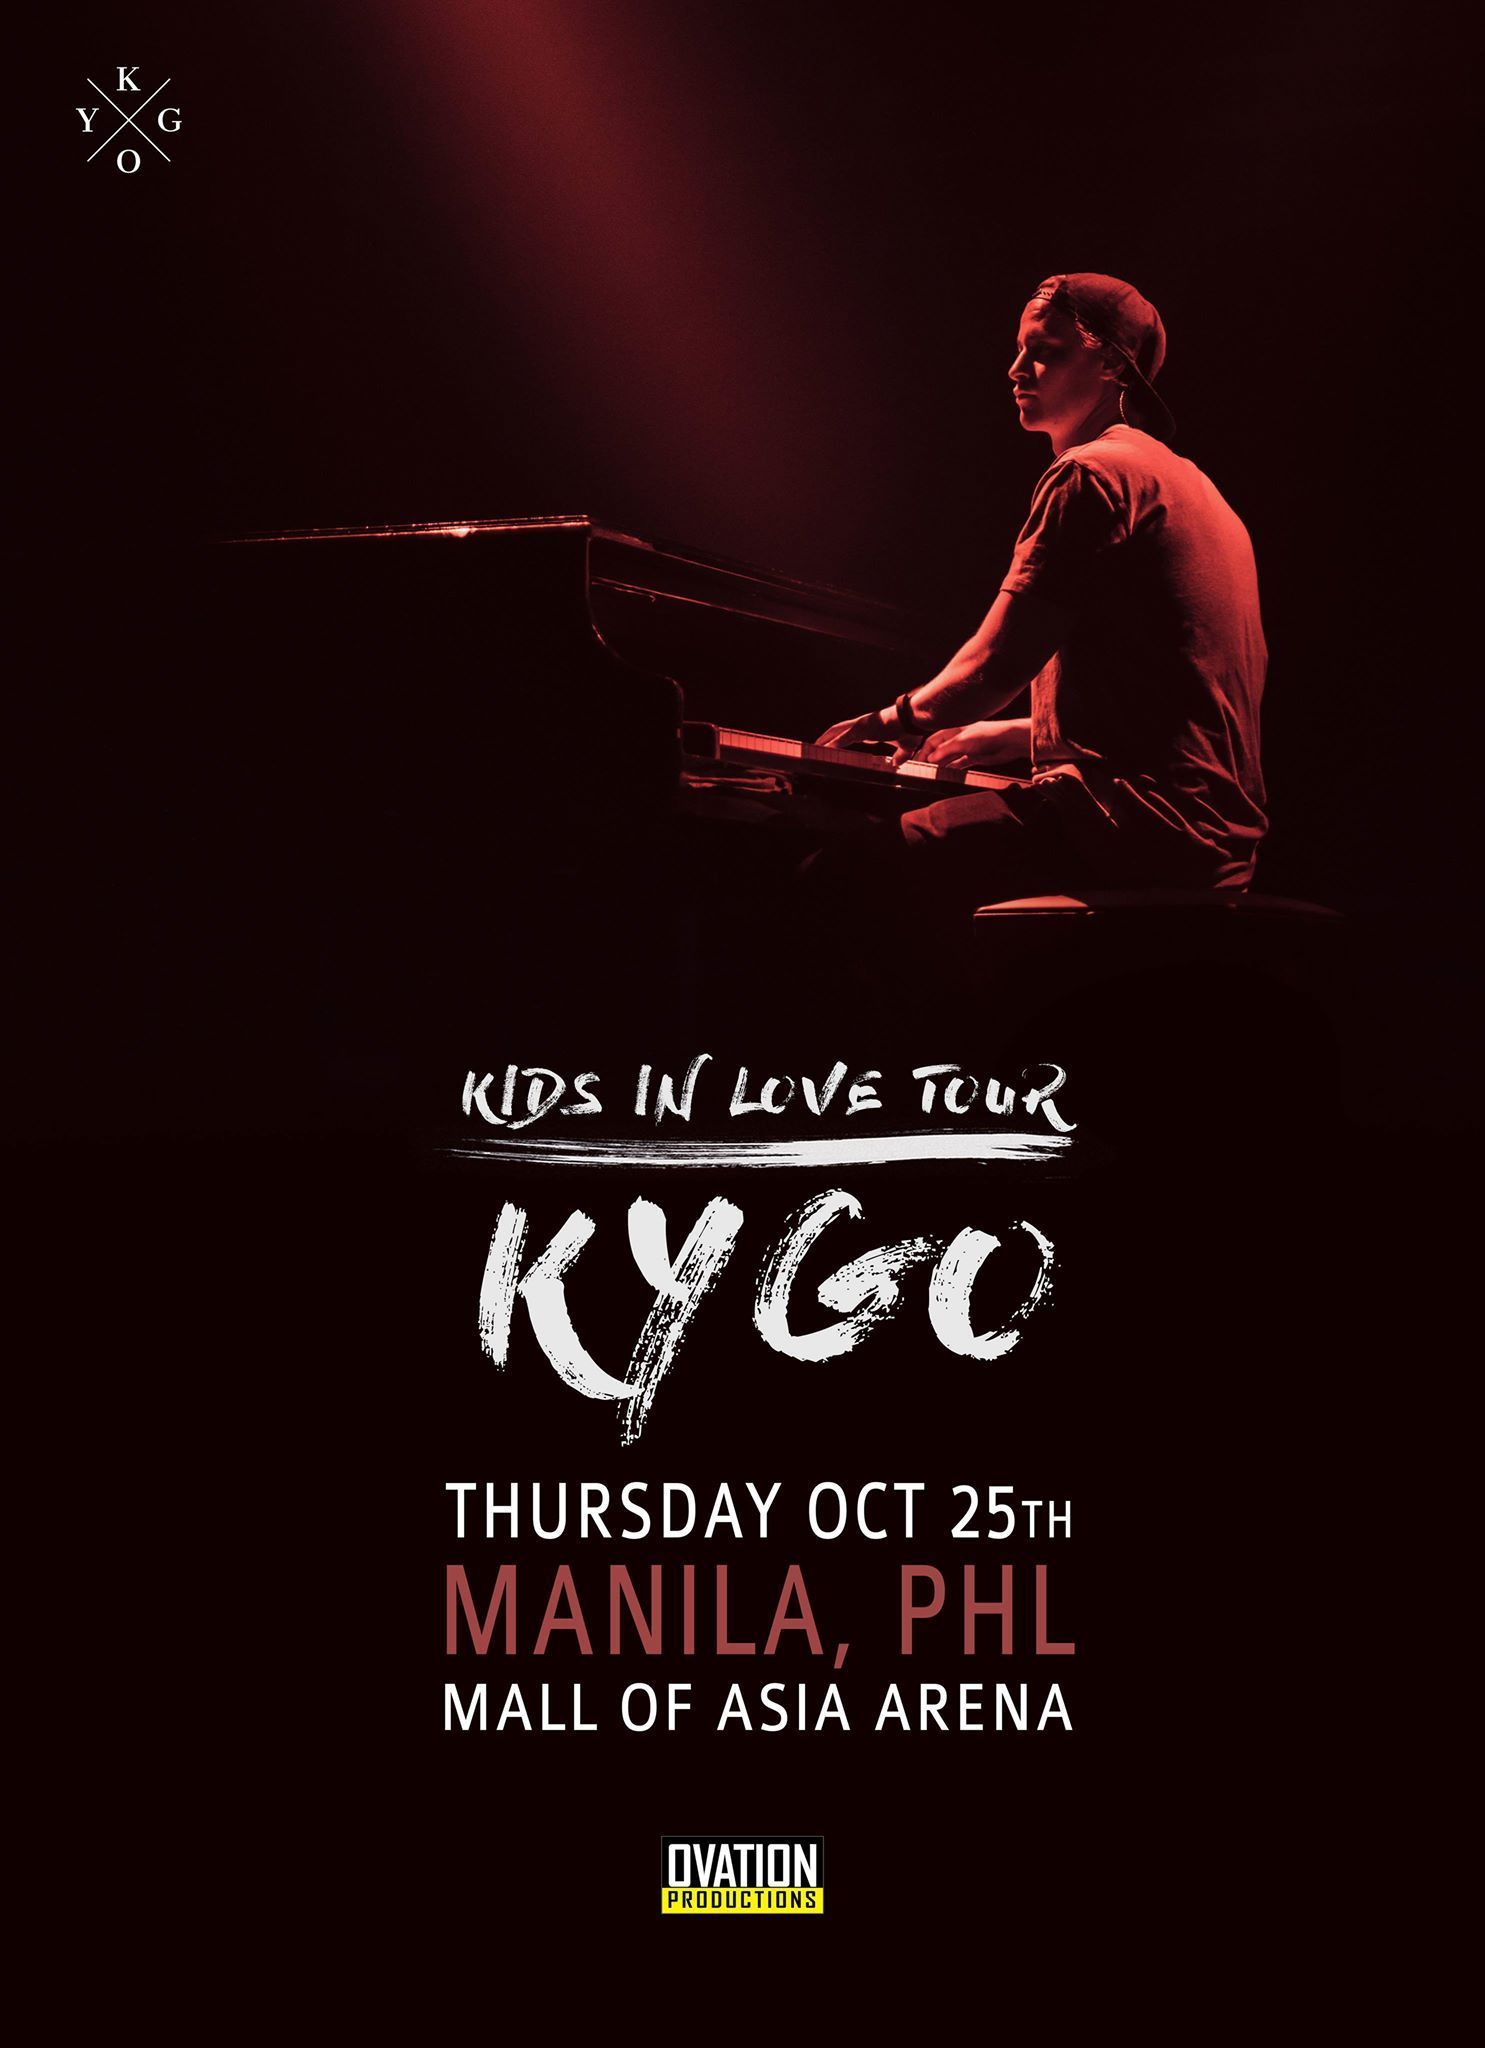 Norwegian Embassy gives away 30 VIP-tickets to Kygo concert in Manila